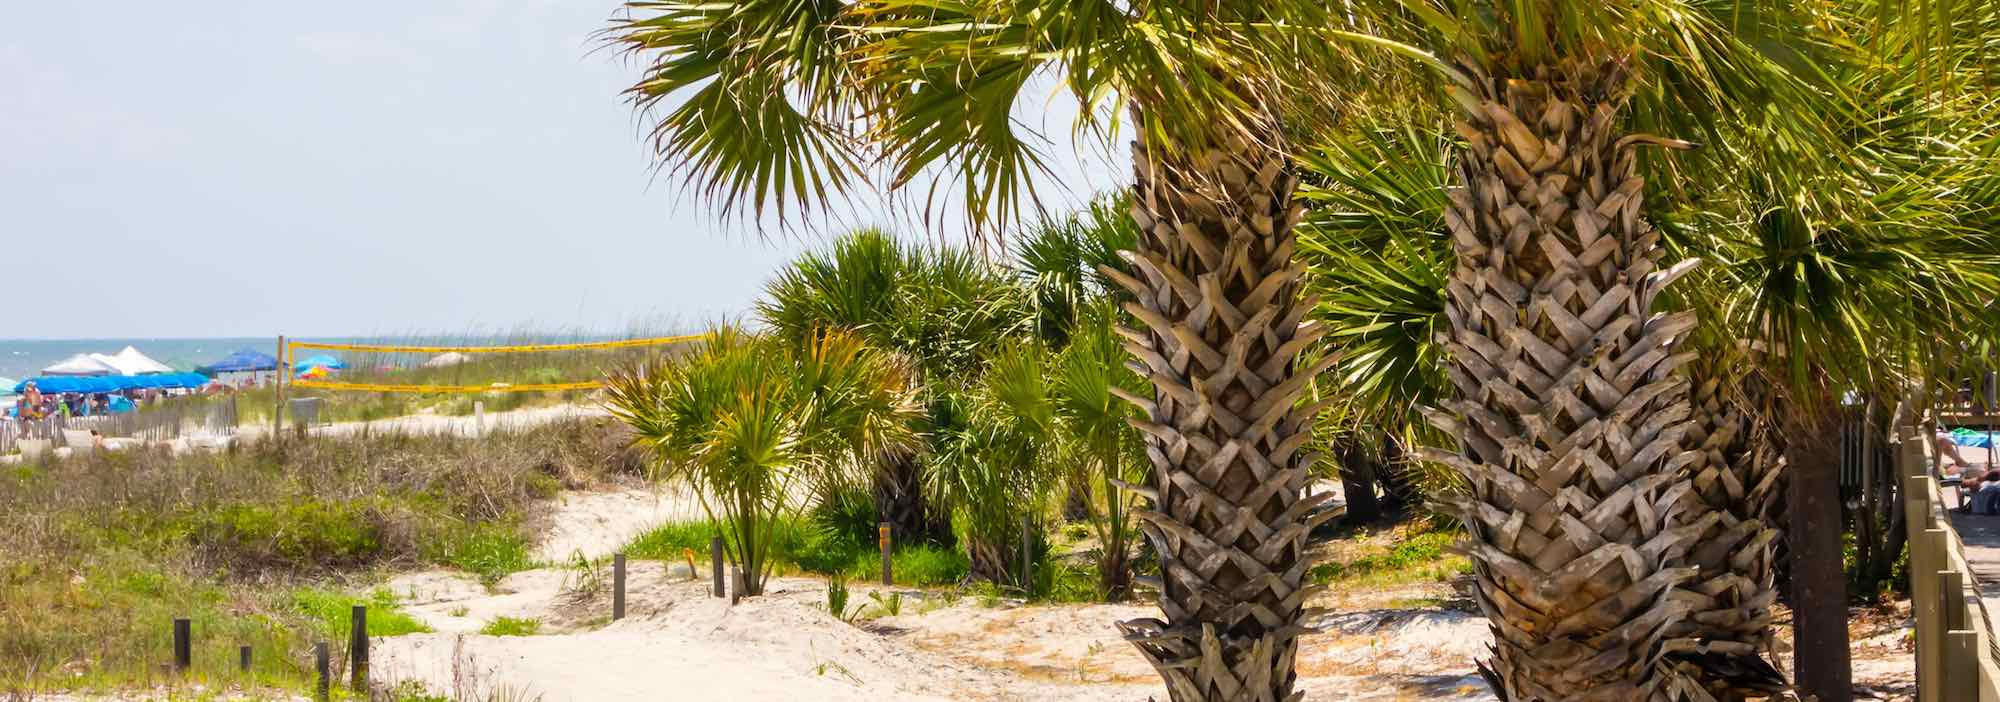 Palm trees on the beach front at Tybee Island, GA.